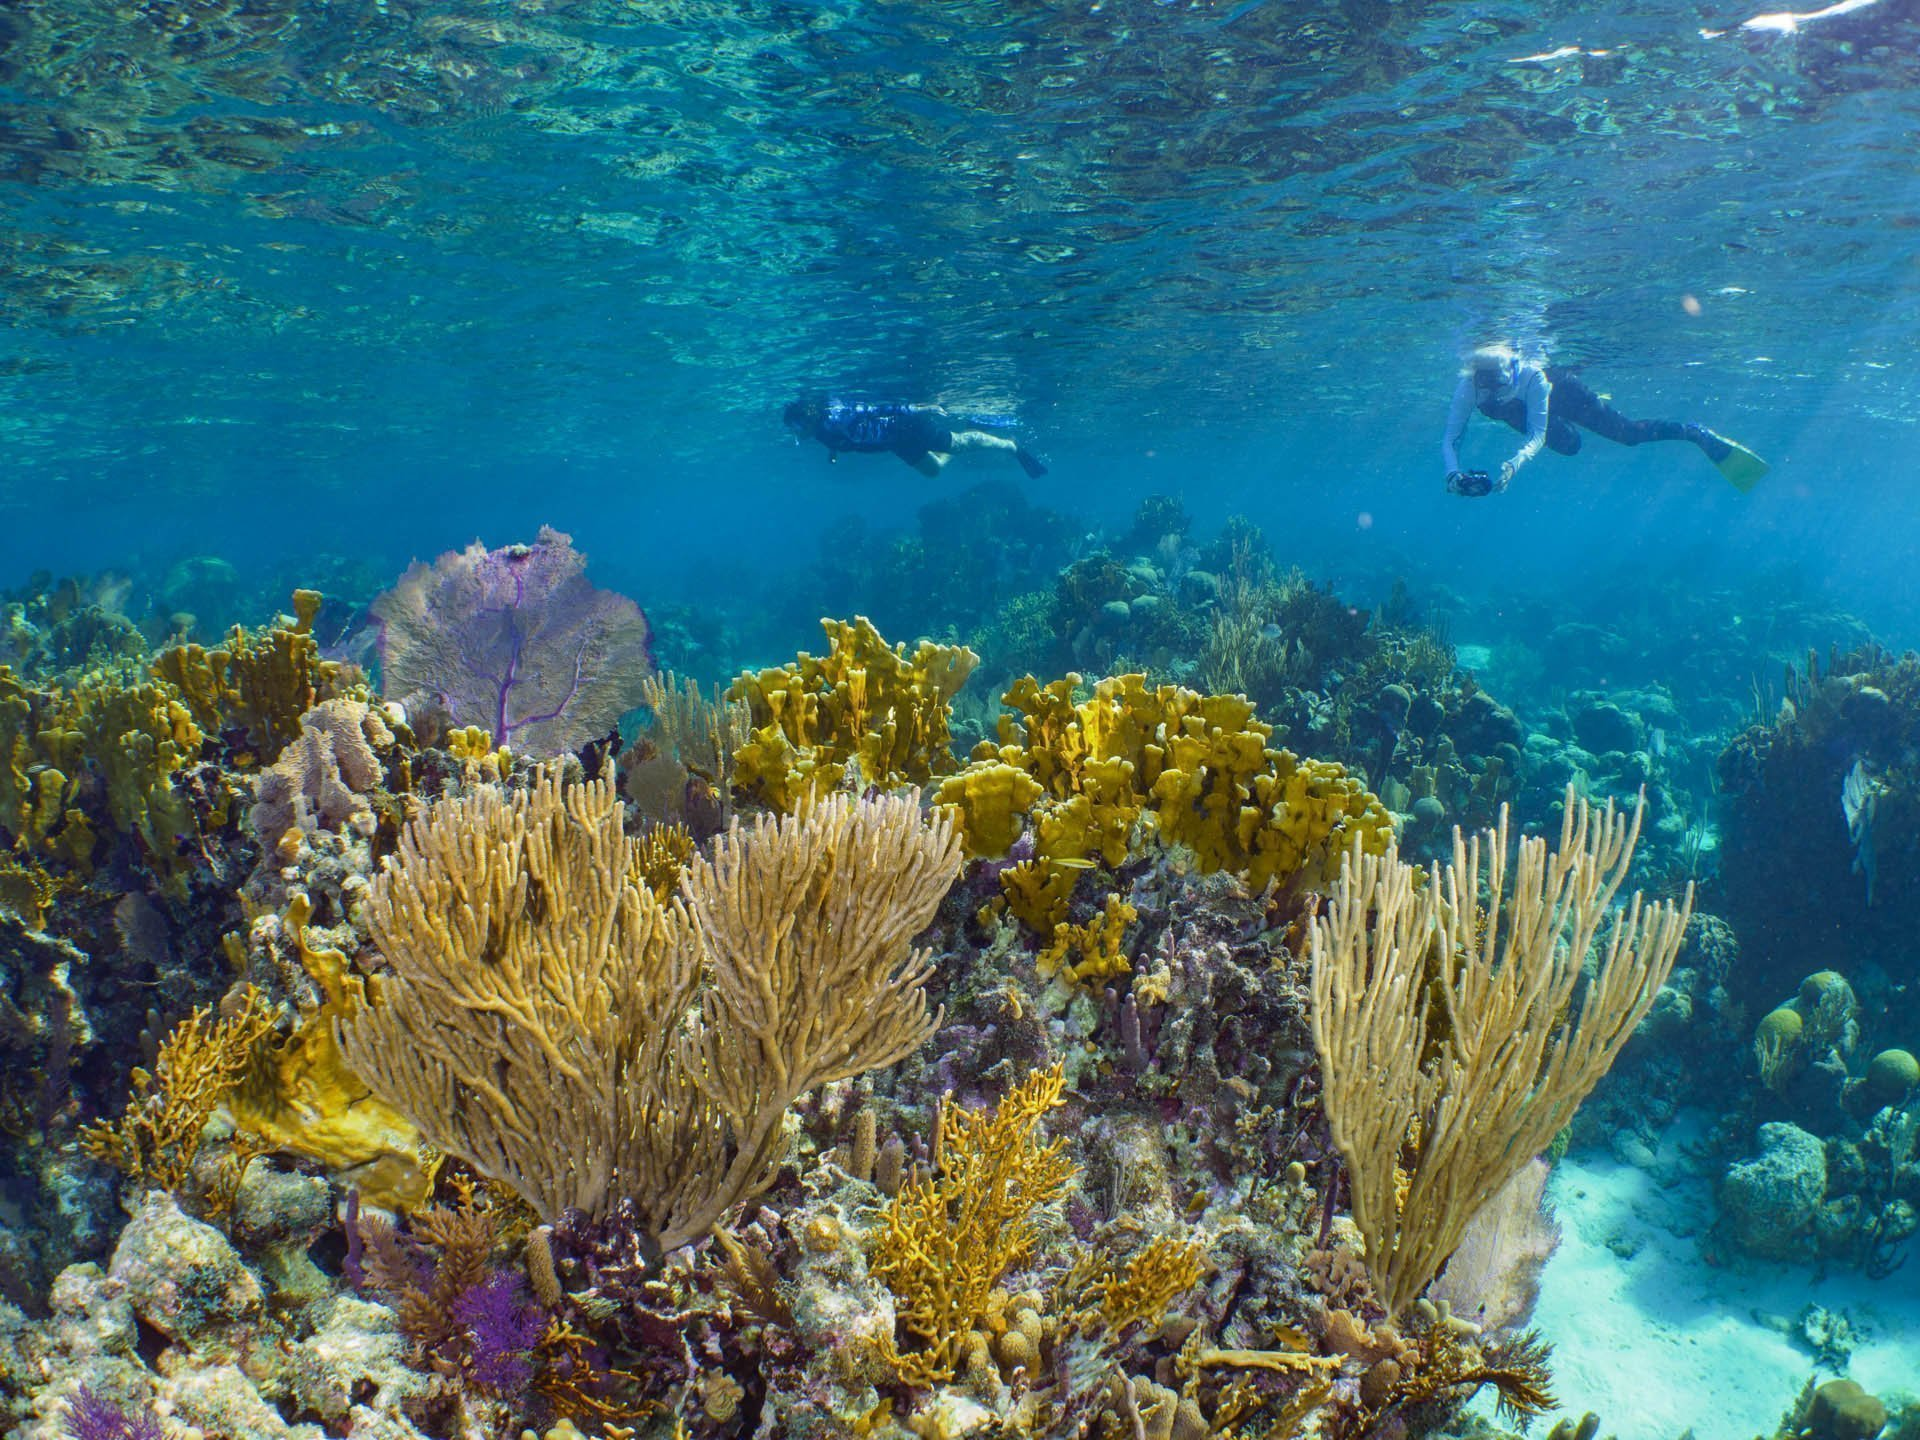 Snorkelers photographing coral reef